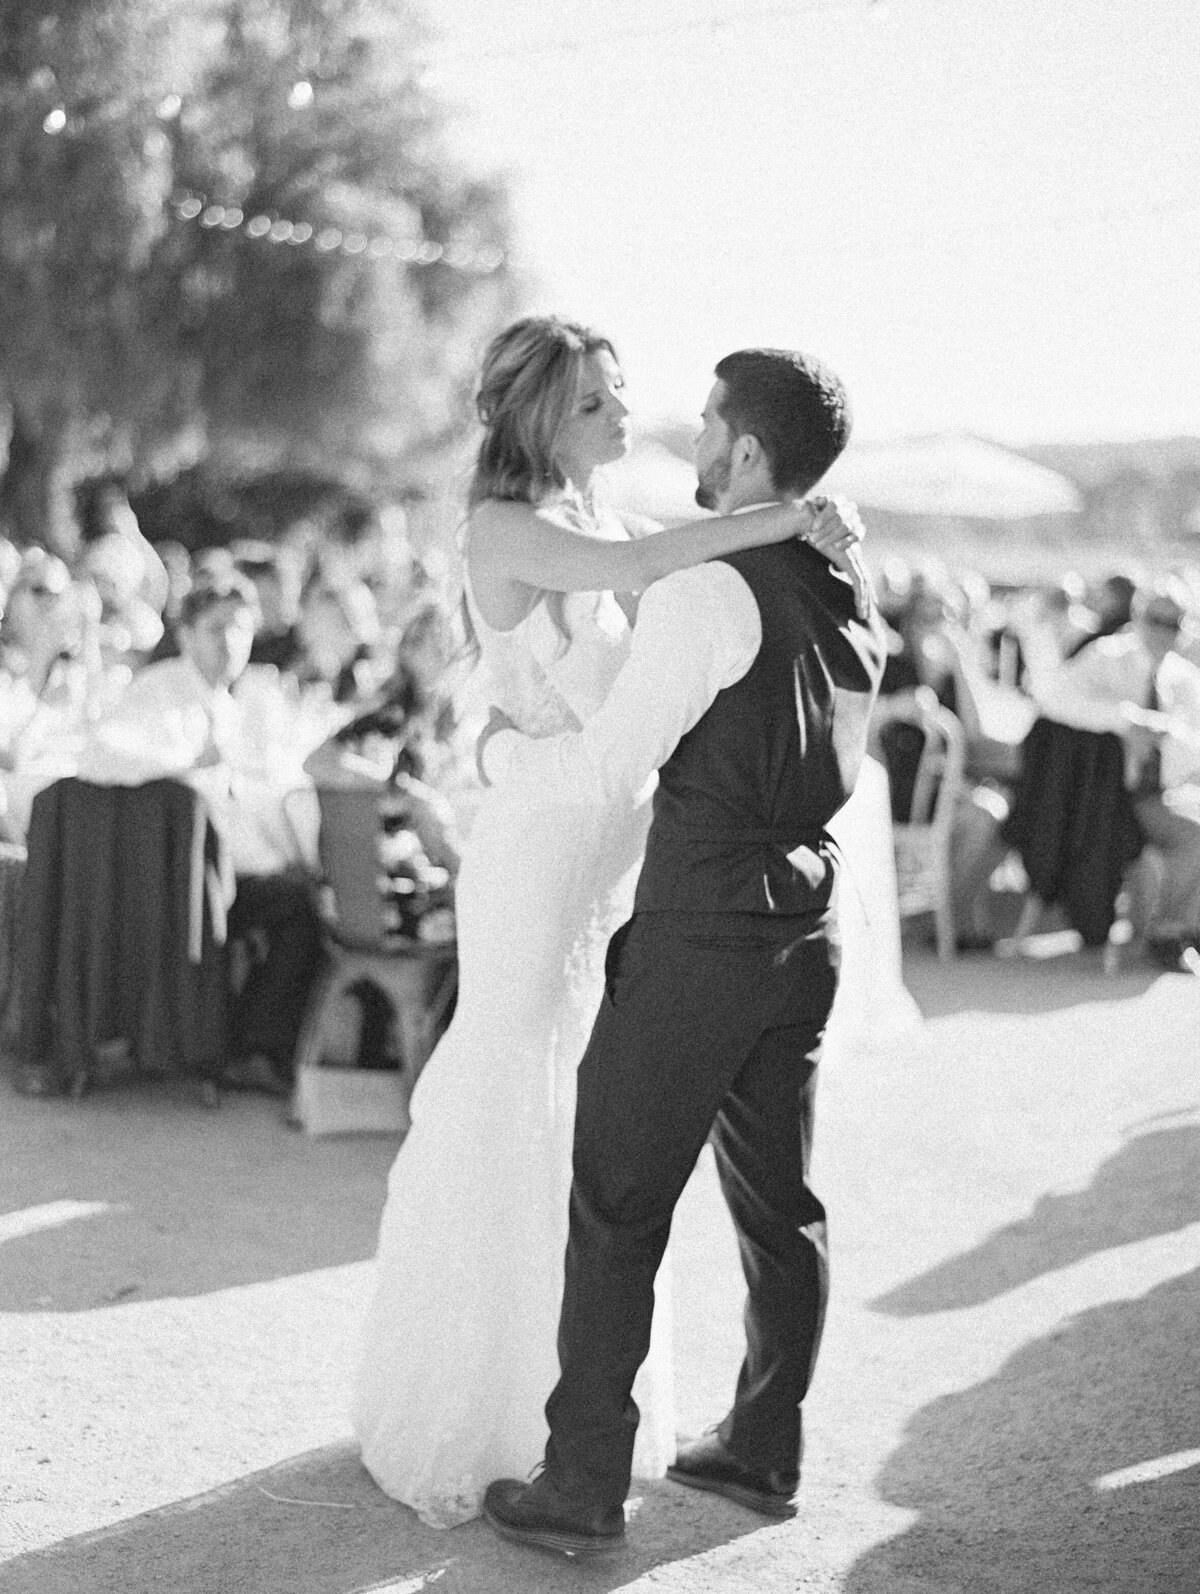 KaitlynKevinWedding_Film_152